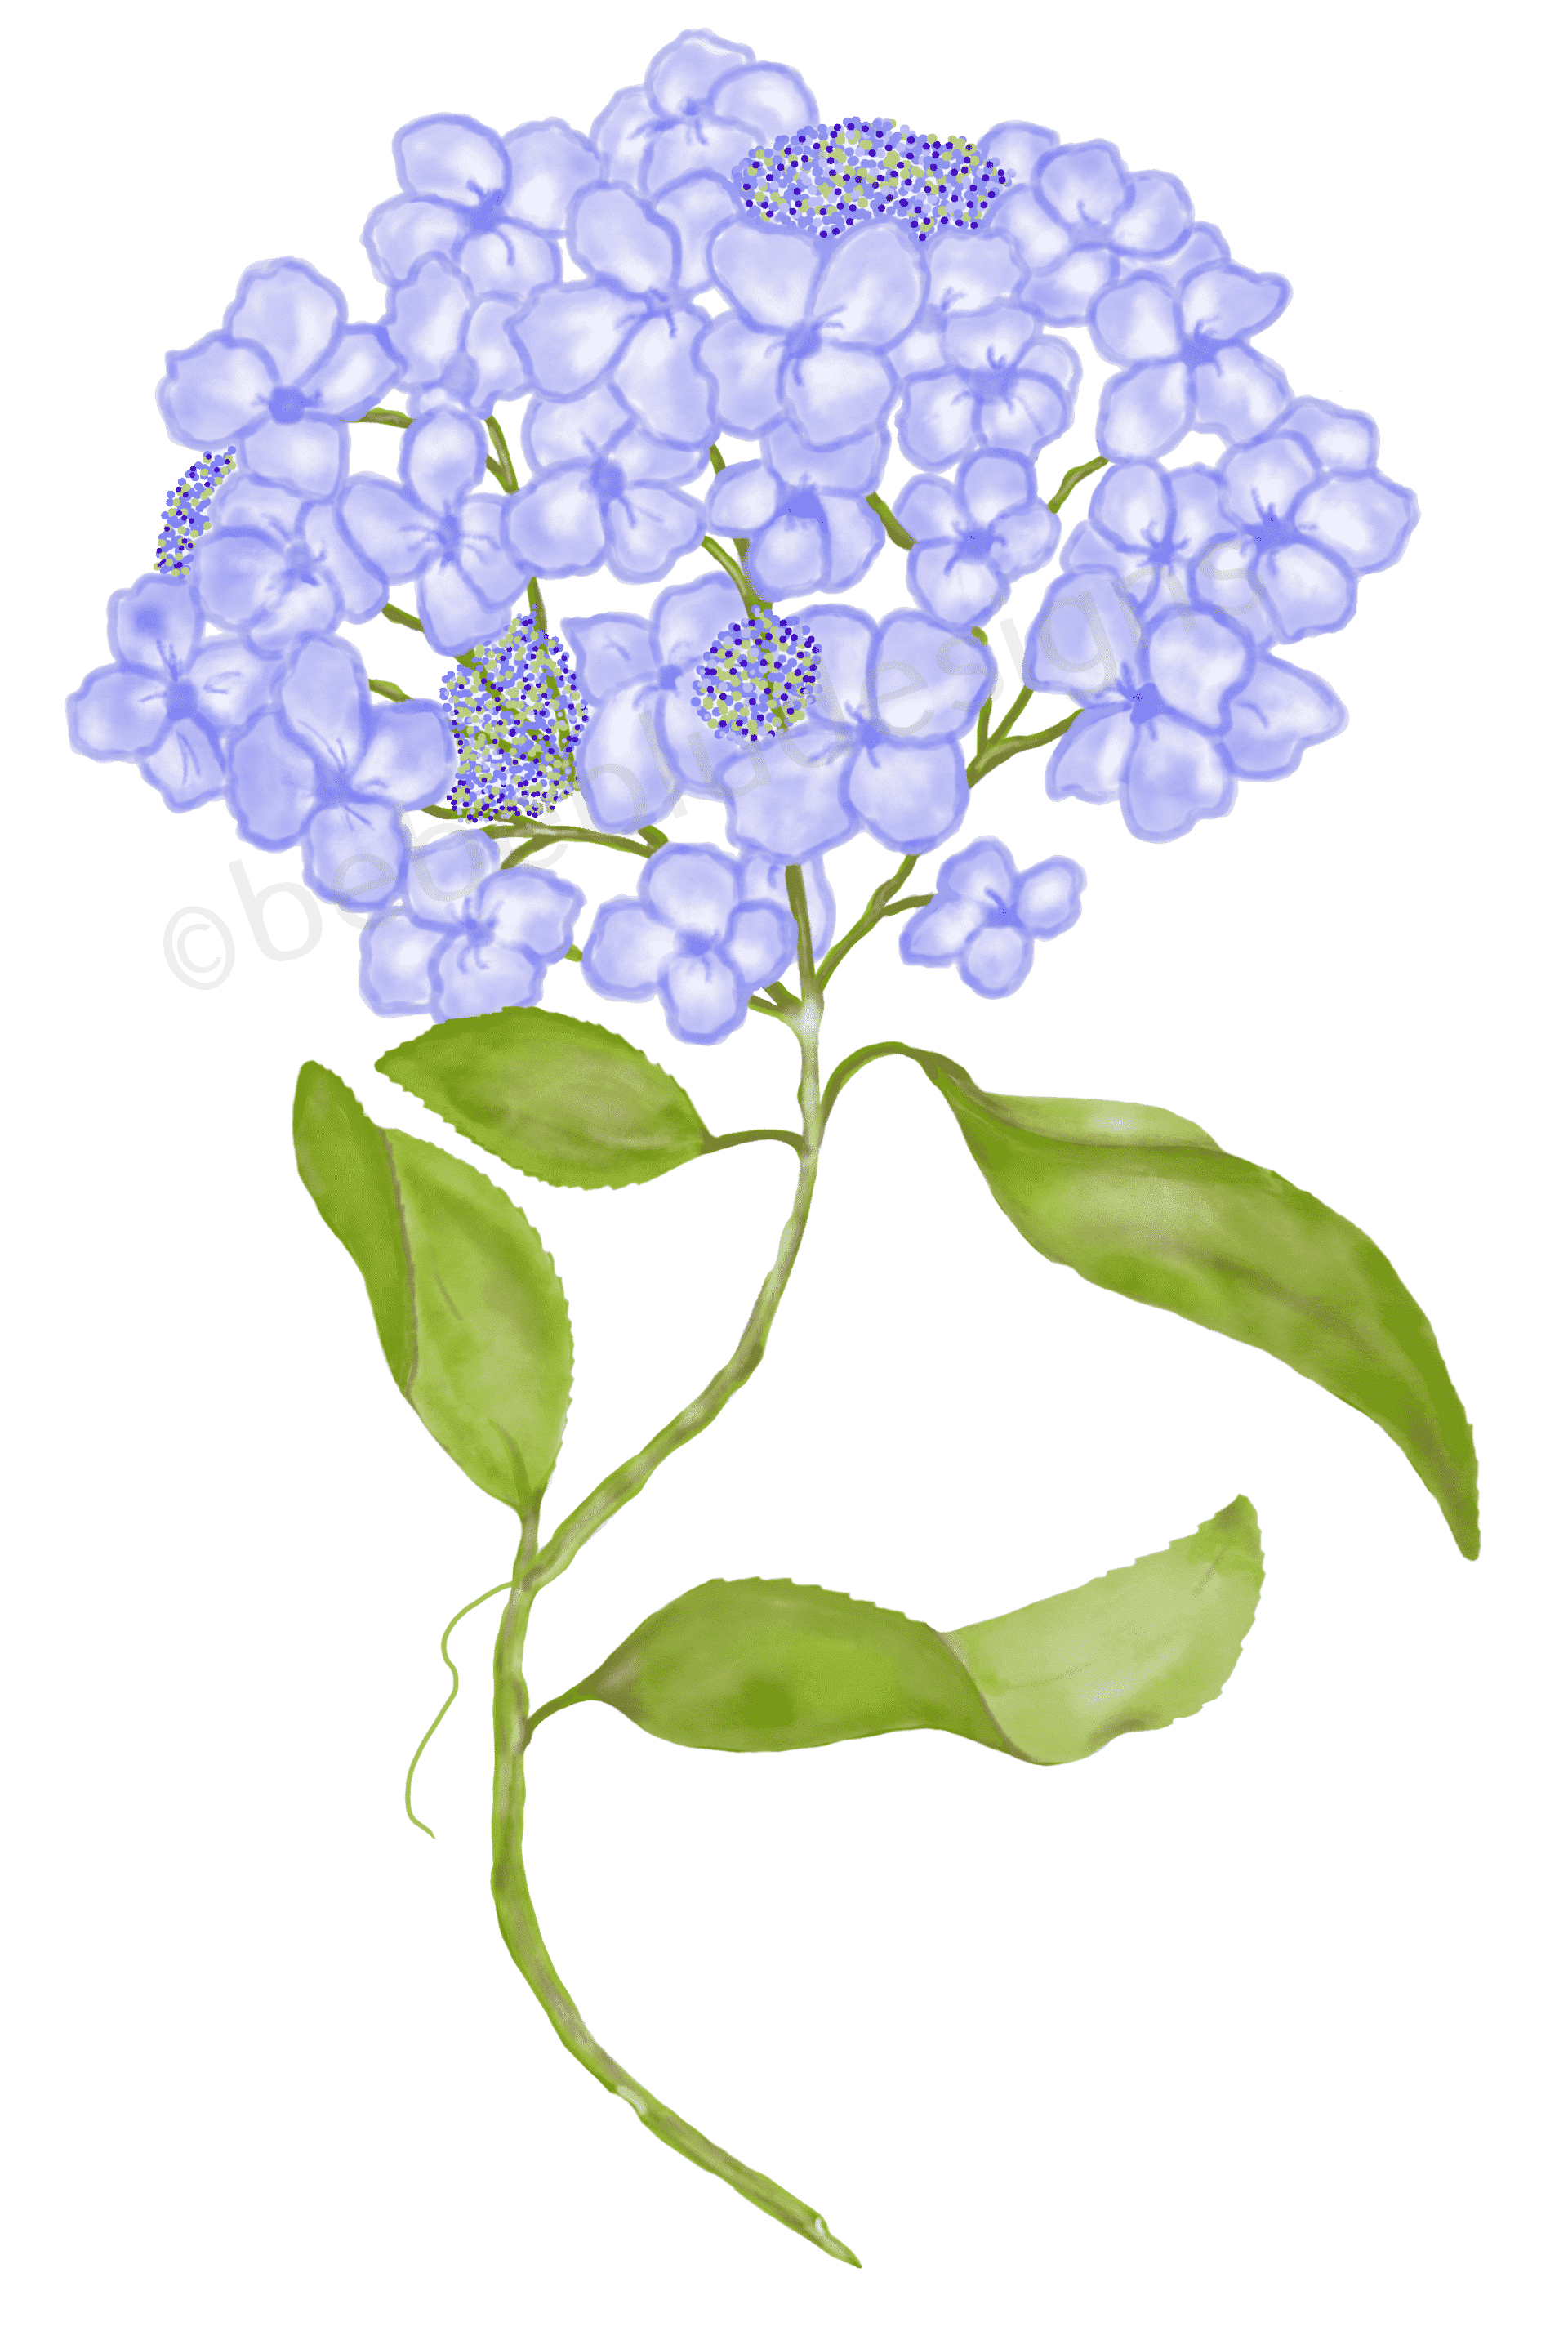 Hydrangea with beads